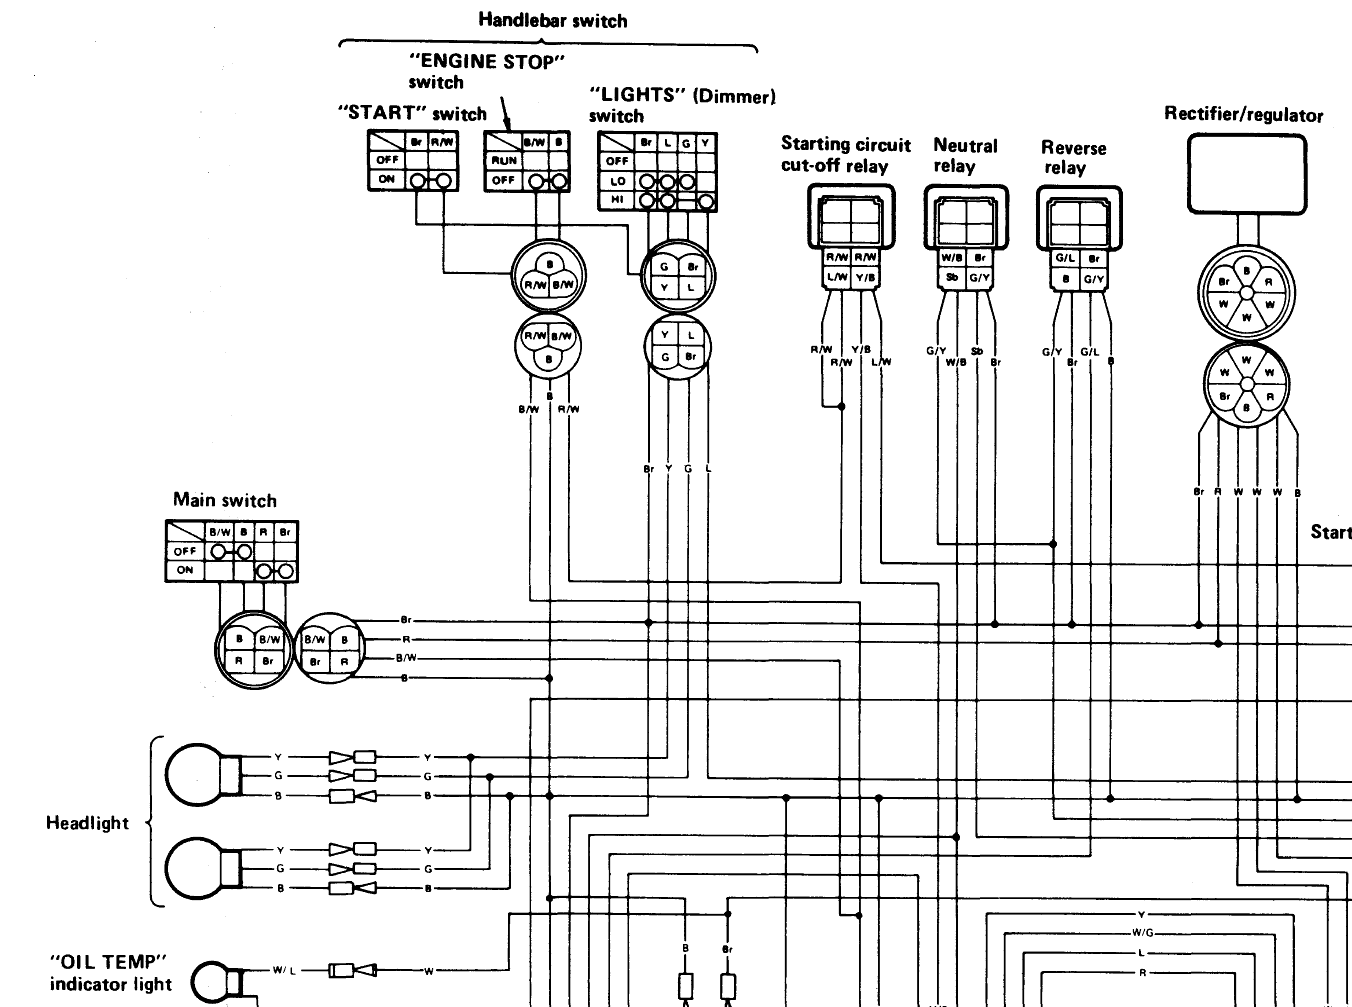 sample21 yamaha warrior wiring diagram the wiring diagram readingrat net 1988 yamaha warrior 350 wiring diagram at fashall.co